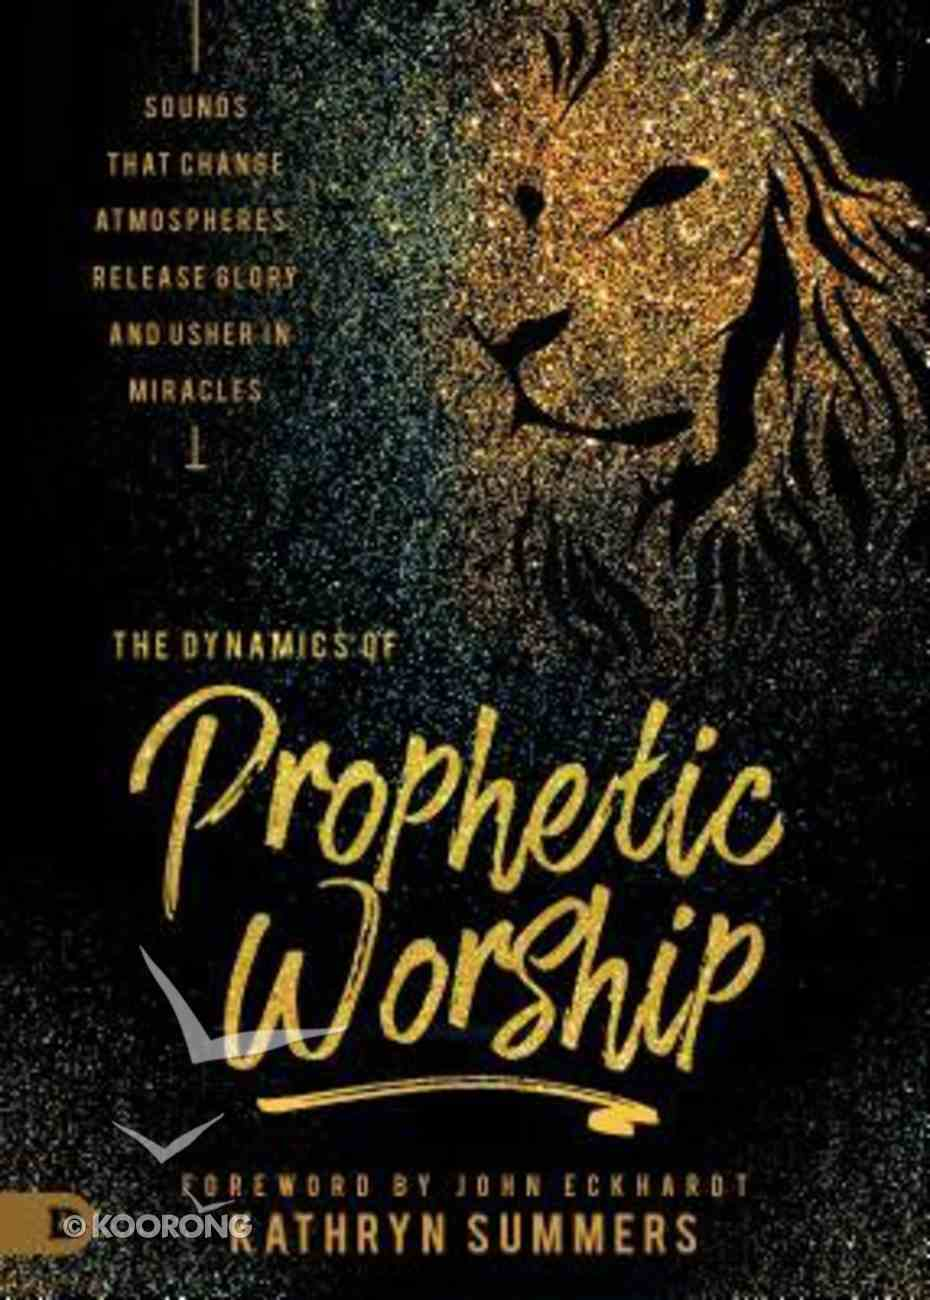 Dynamics of Prophetic Worship: Sounds That Change Atmospheres, Release Glory and Usher in Miracles Paperback